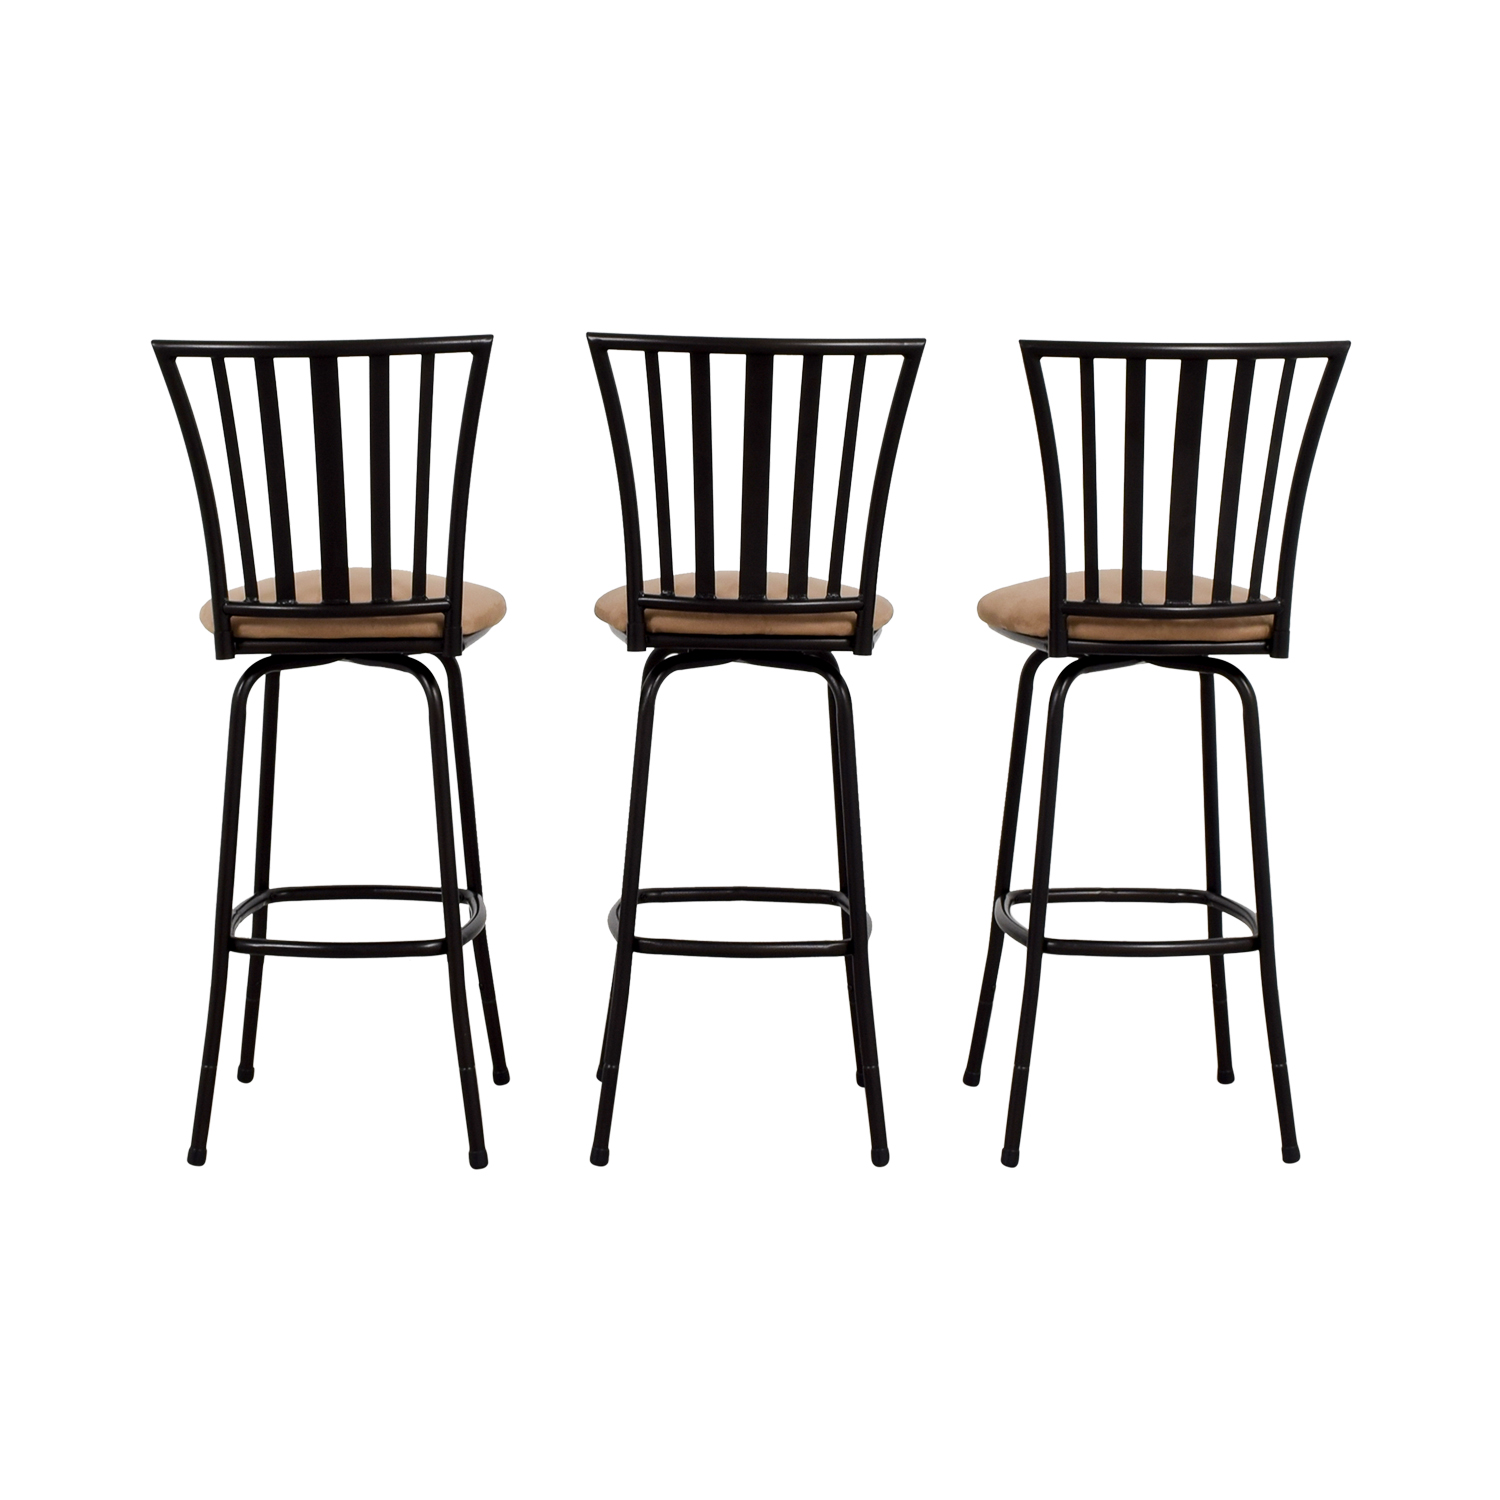 Tan Upholstered Stools with Black Frame nyc